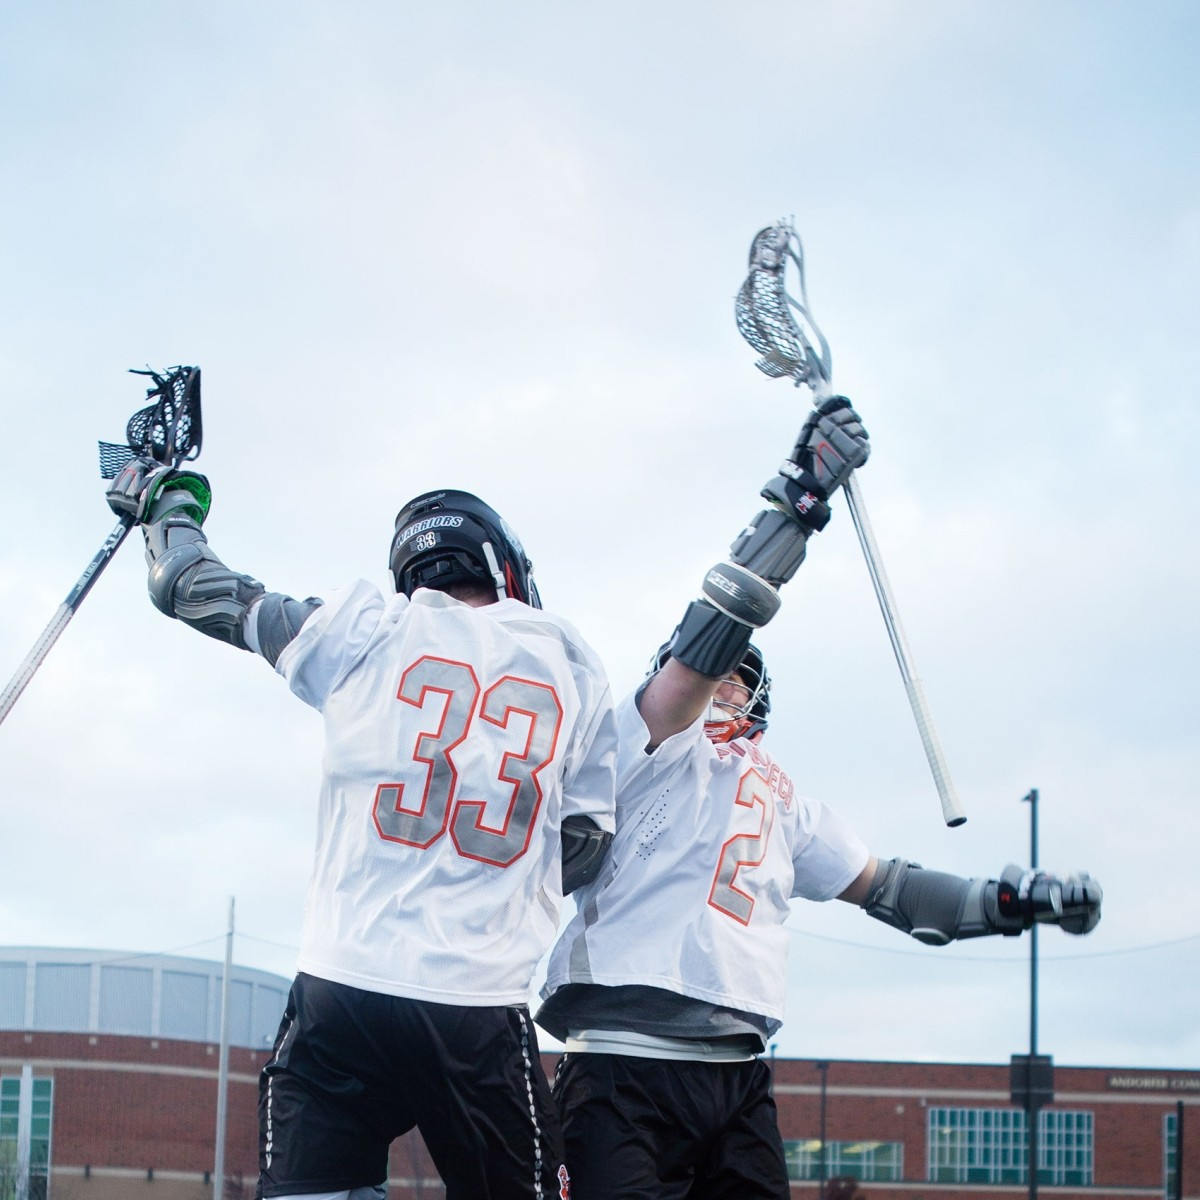 Indiana Tech - Lacrosse players